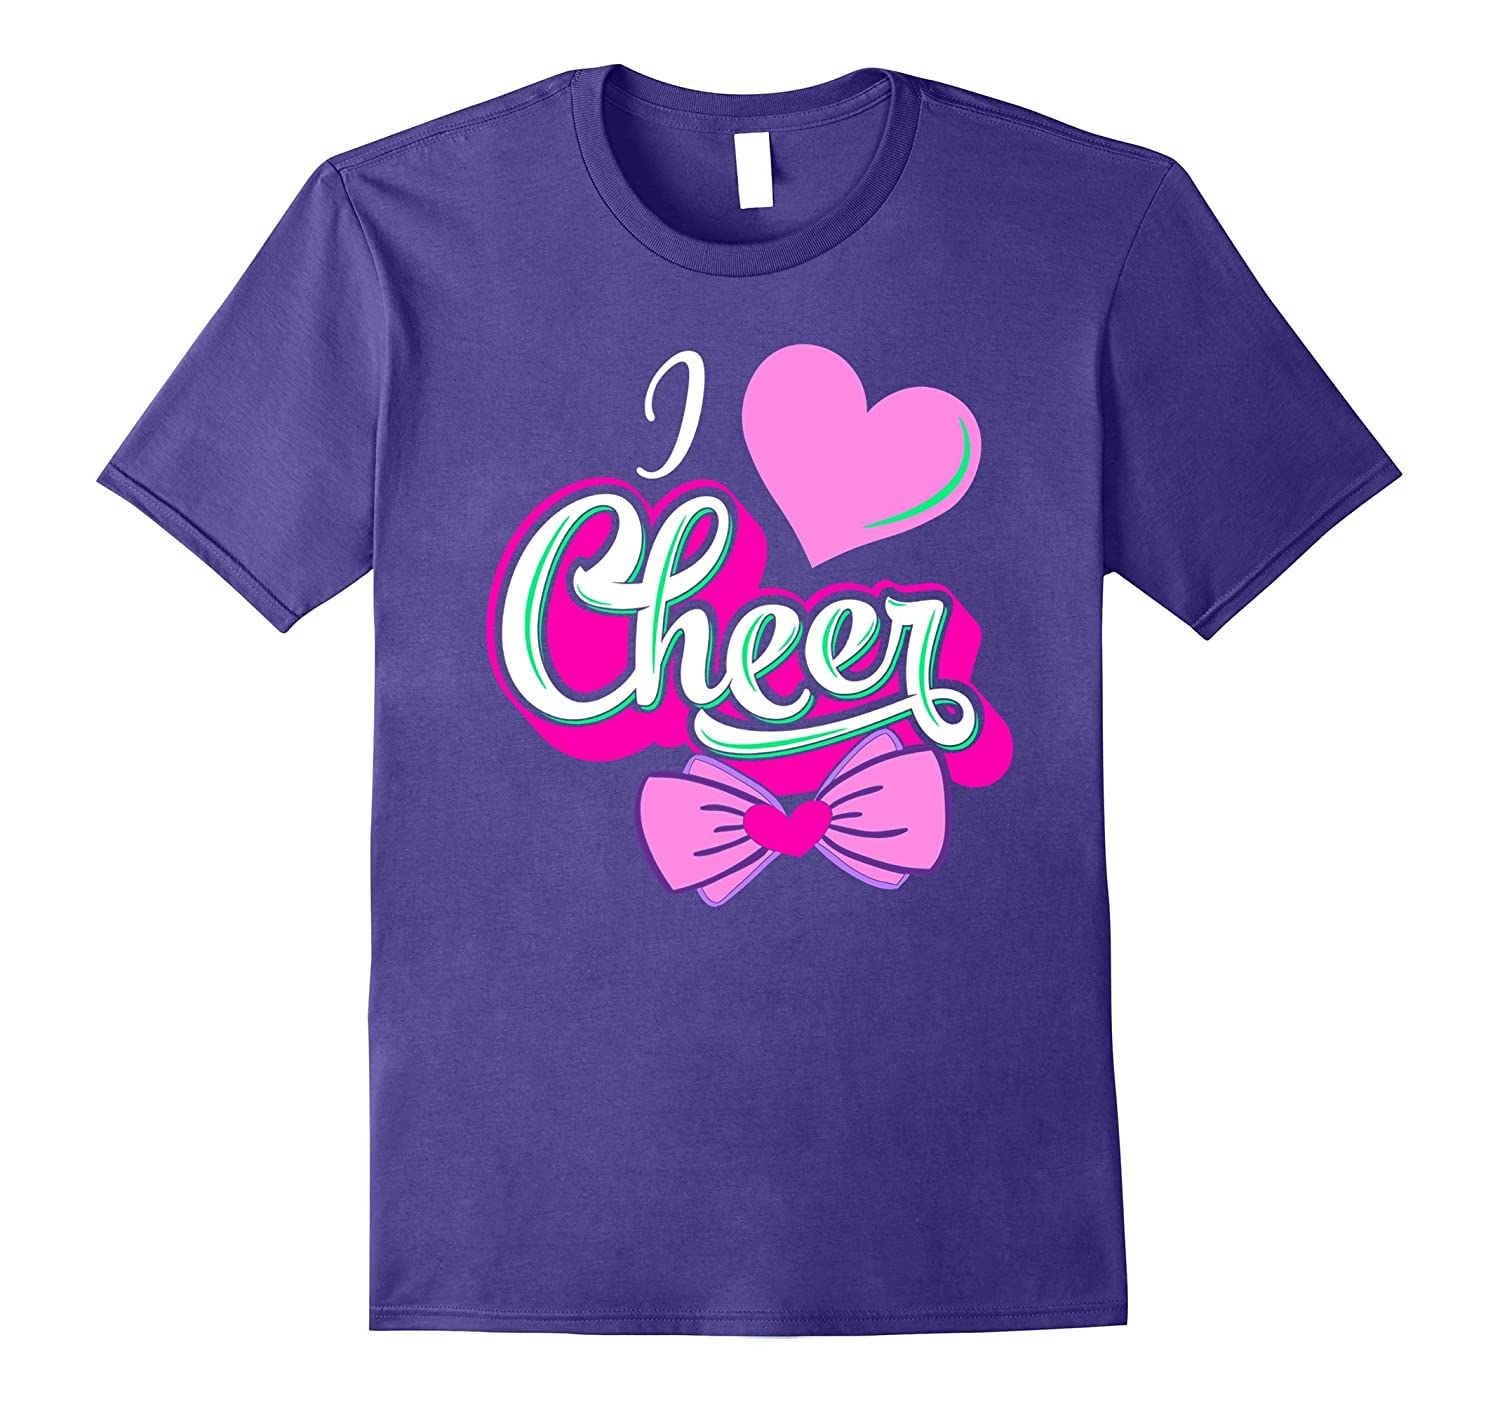 Love Cheer Shirts For Teen Girls Cheerleader T Shirt-TH